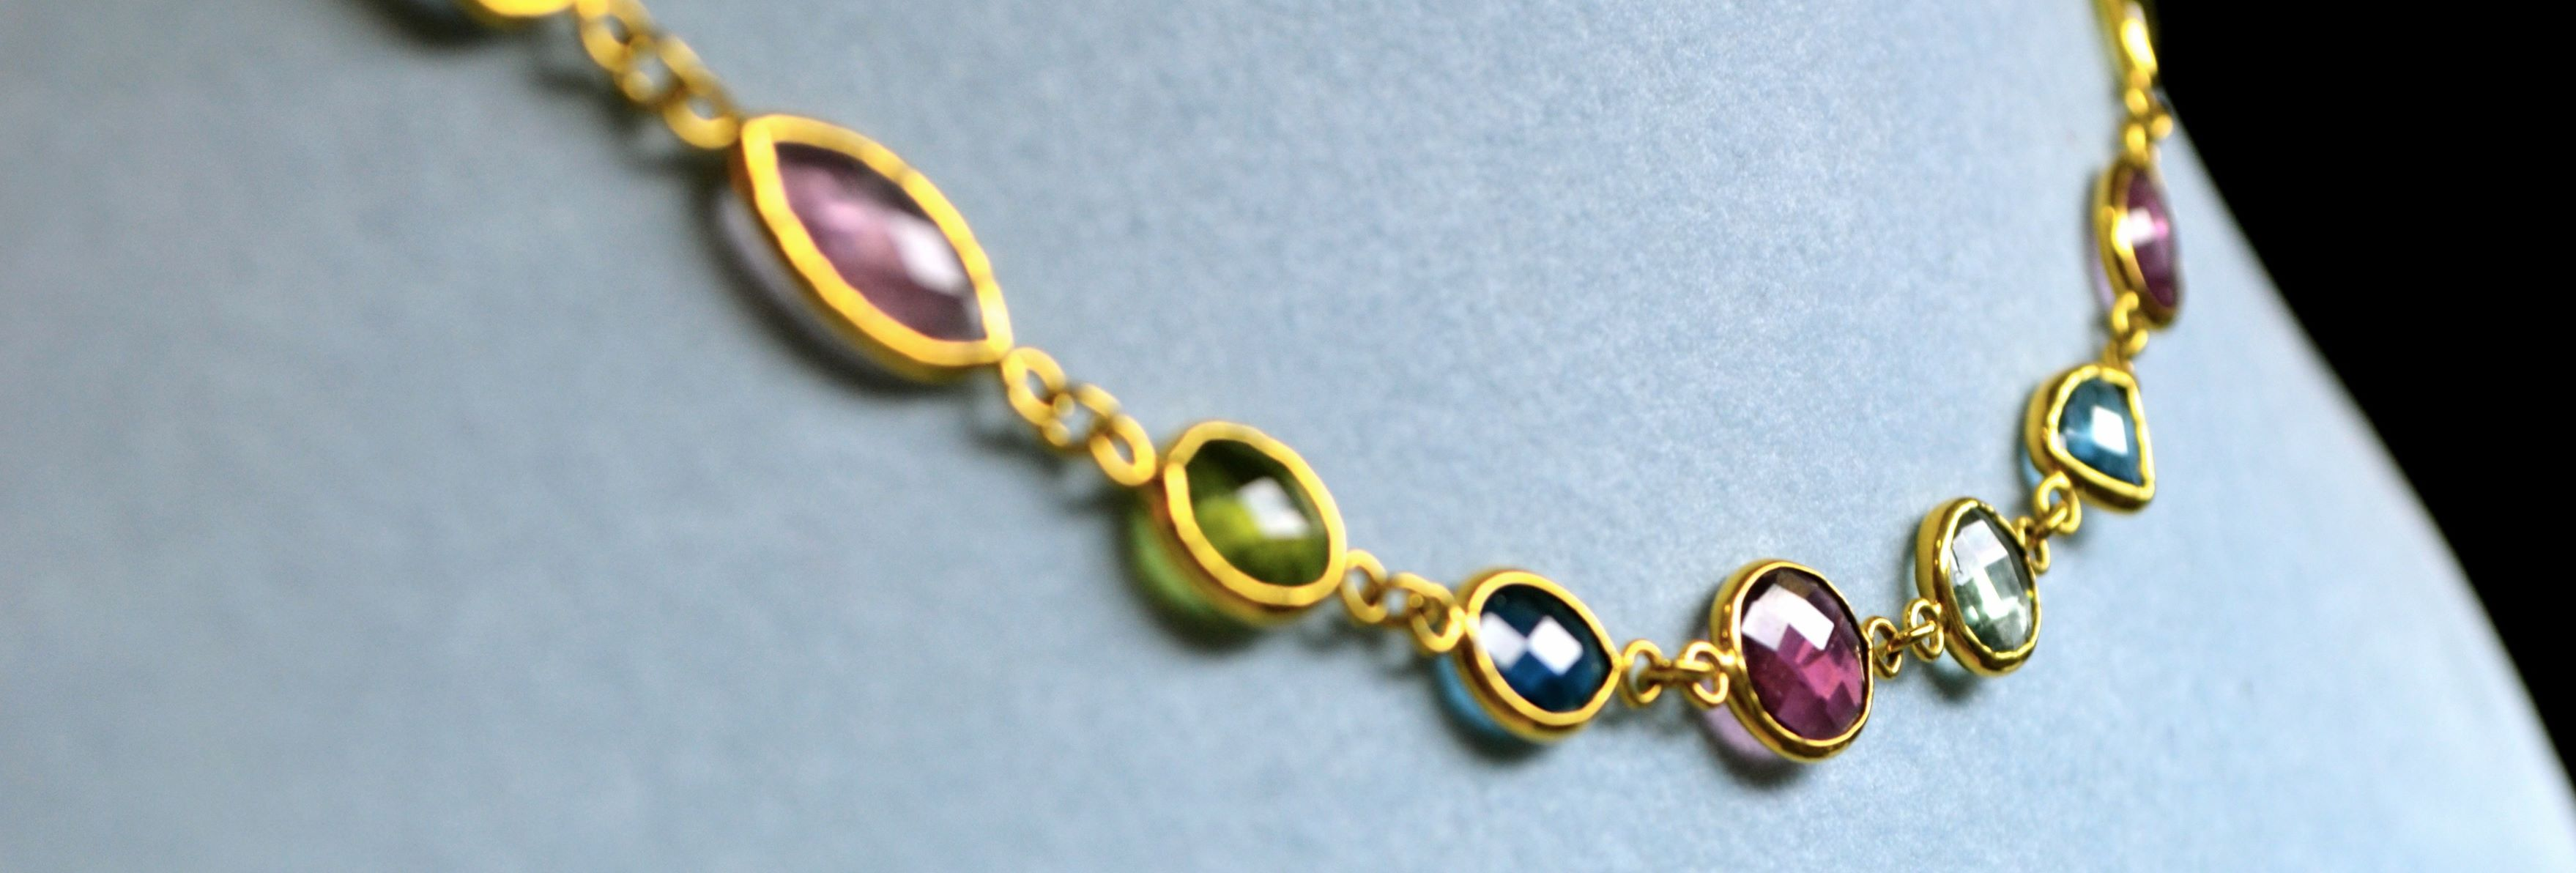 Colored Stones on Gold